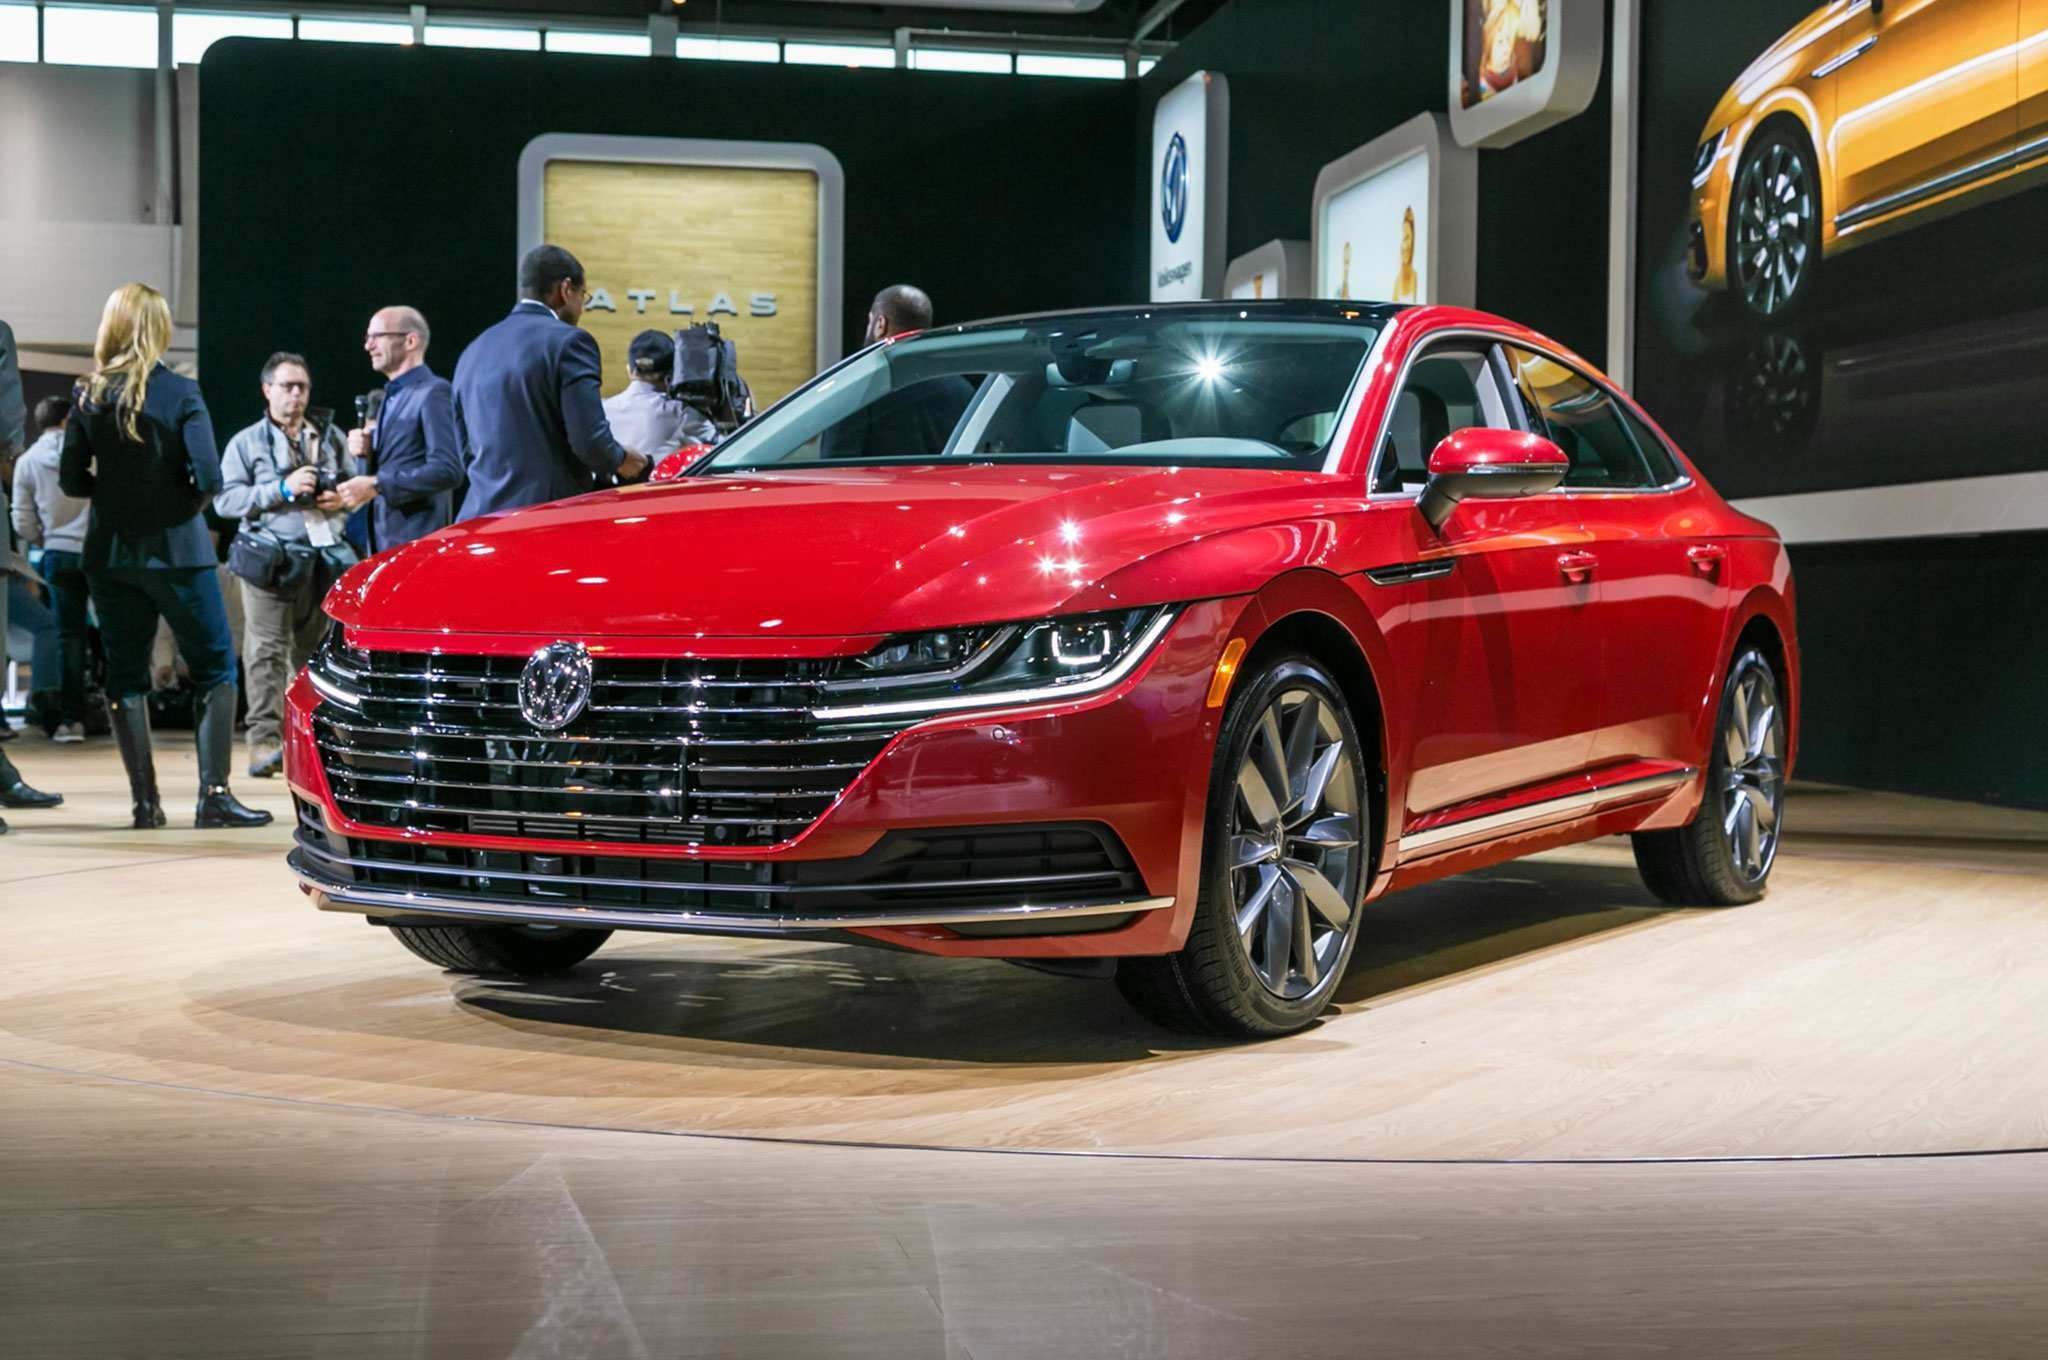 30 Best Arteon Vw 2019 Prices